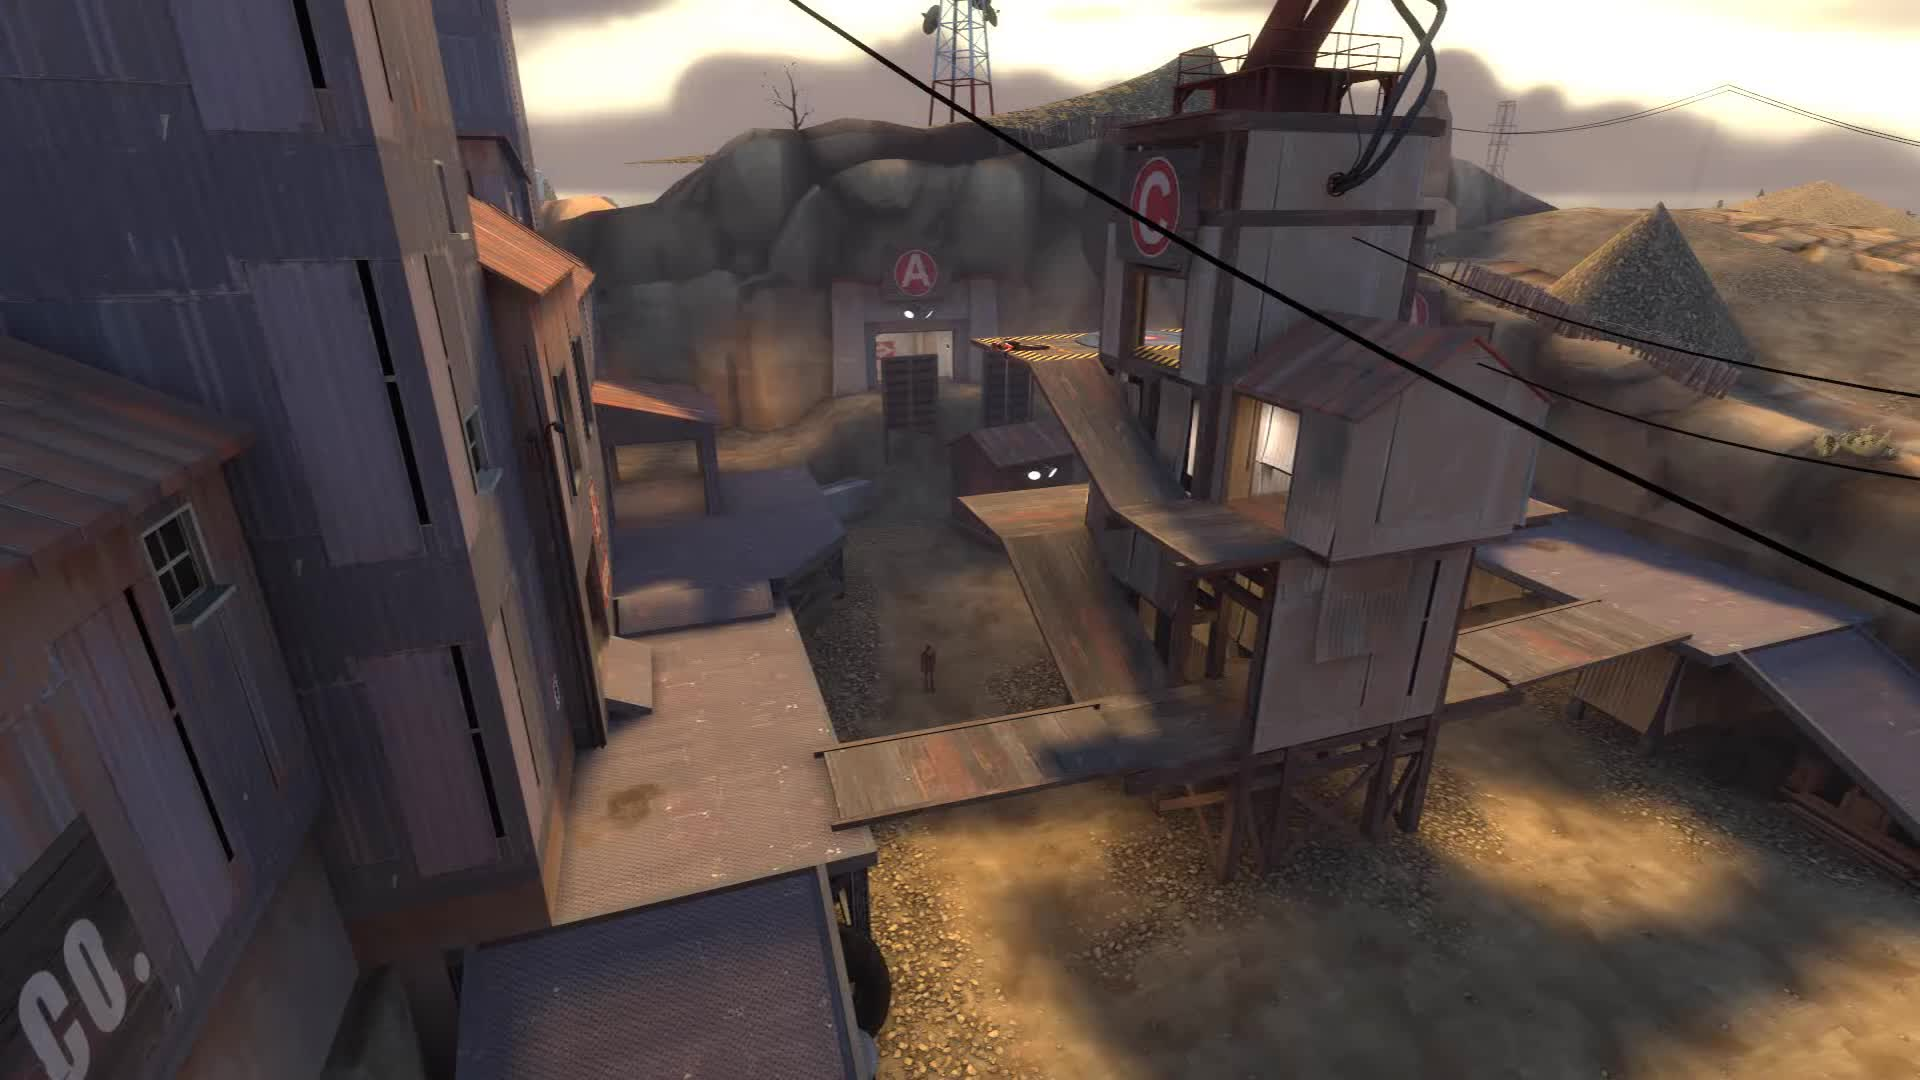 Fortress, Garry's, Gmod, Heavy, Mod, Sniper, Spy, TF2, Team, jarate, Spy challenges Heavy for a fight GIFs